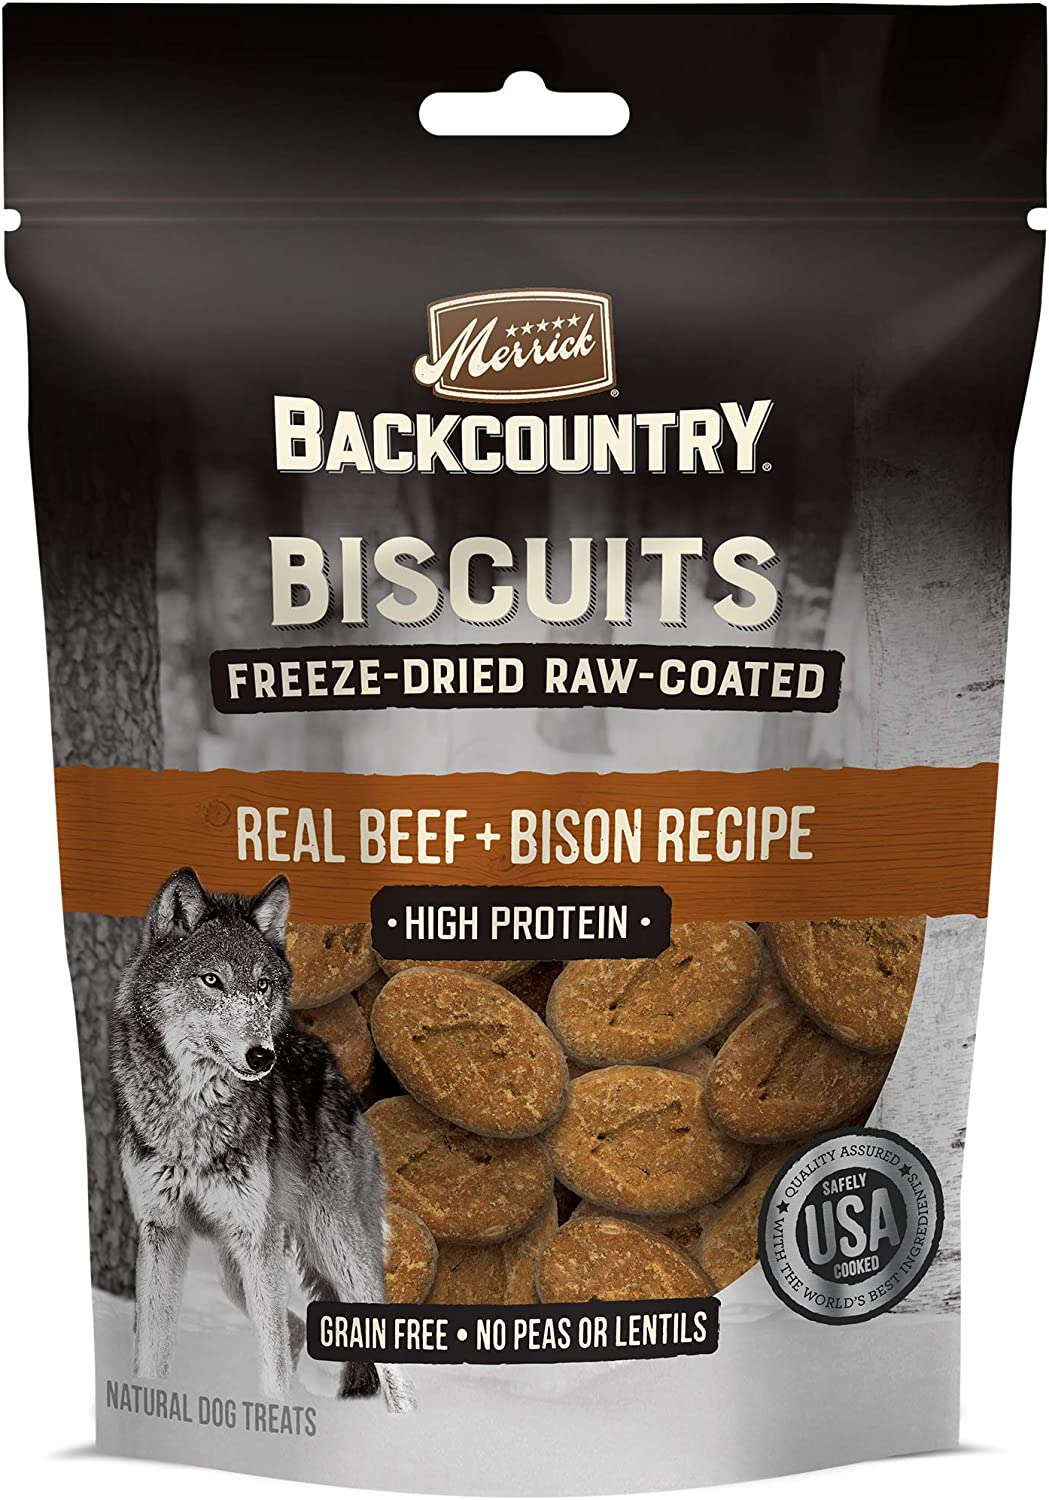 Merrick Backcountry Biscuits Real Beef + Bison Recipe Grain Free Freeze-Dried Raw Coated Dog Treats, 10-oz Bag